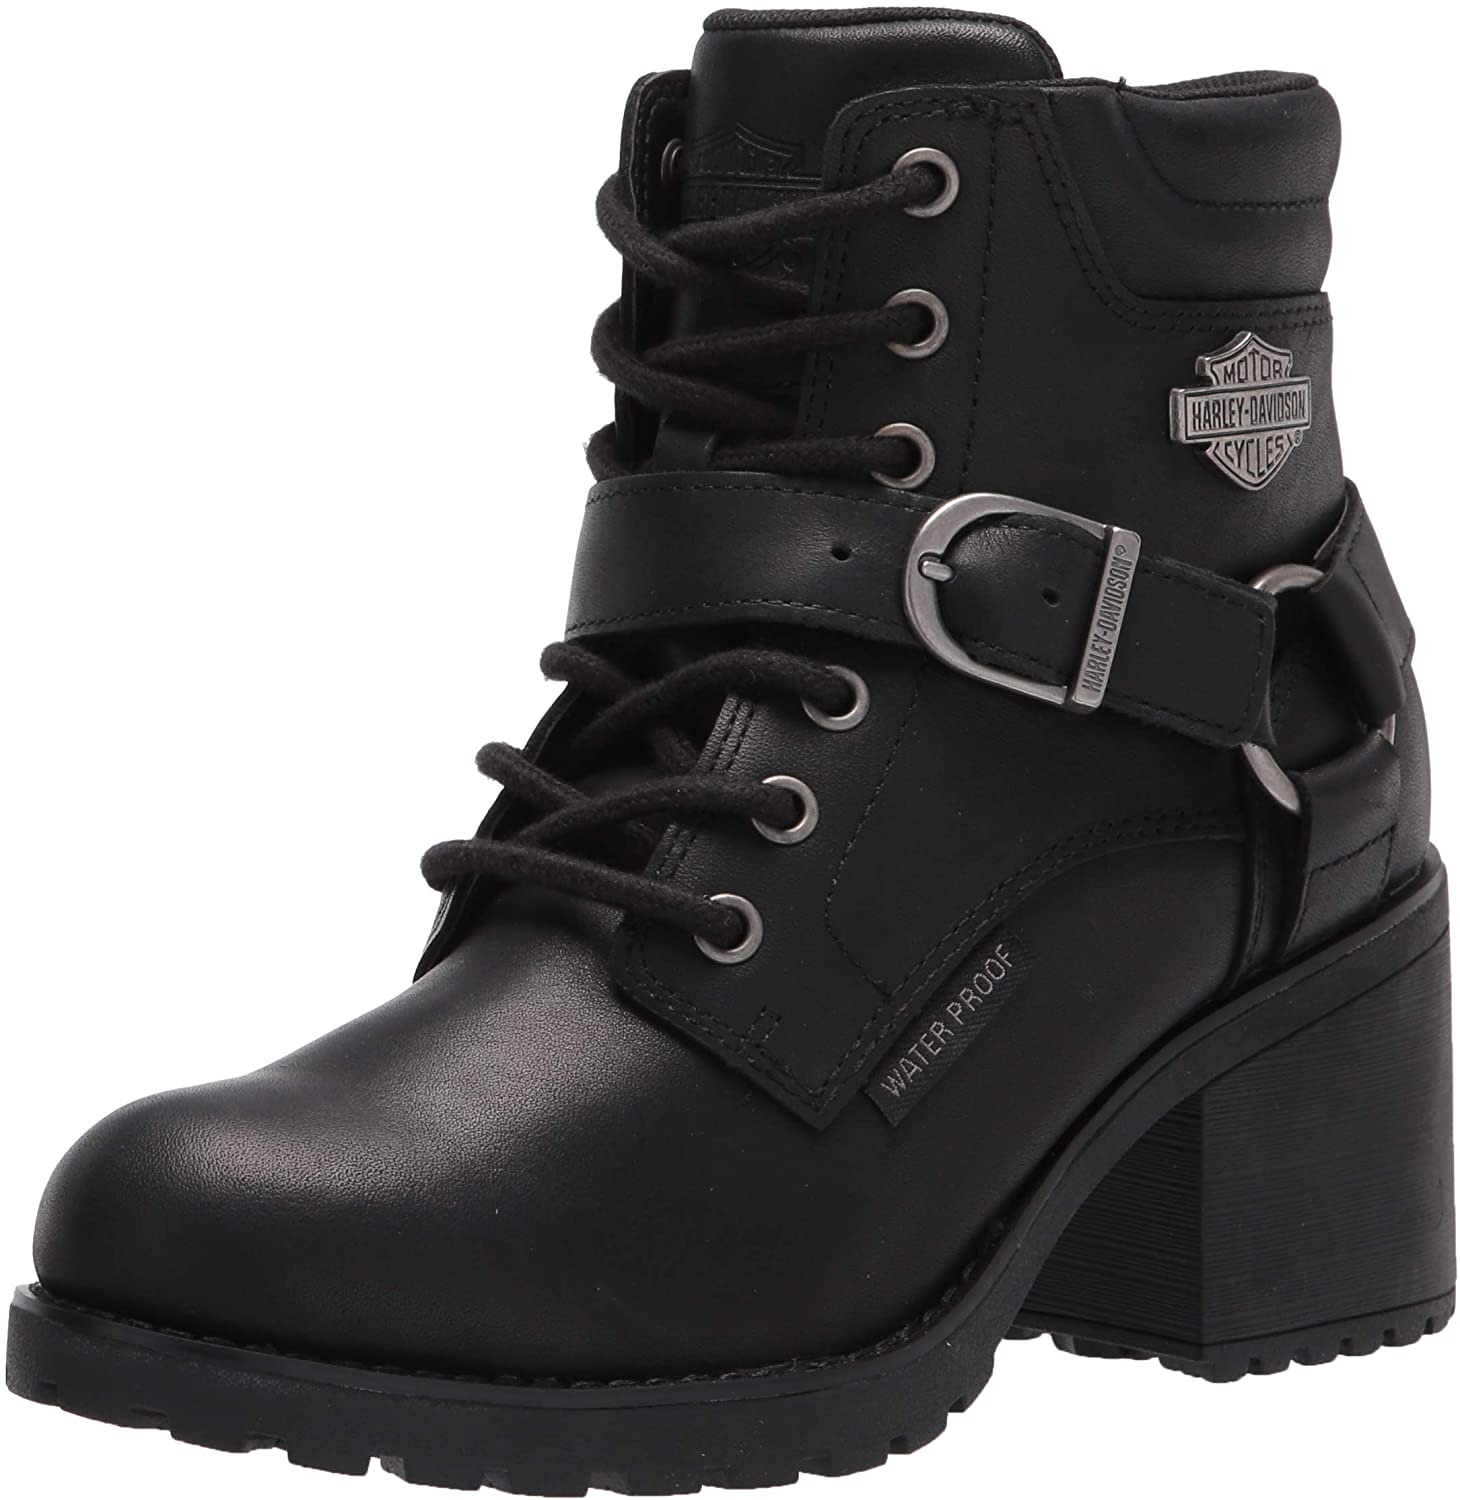 "Harley-Davidson Howell 5"" Lace Women's"